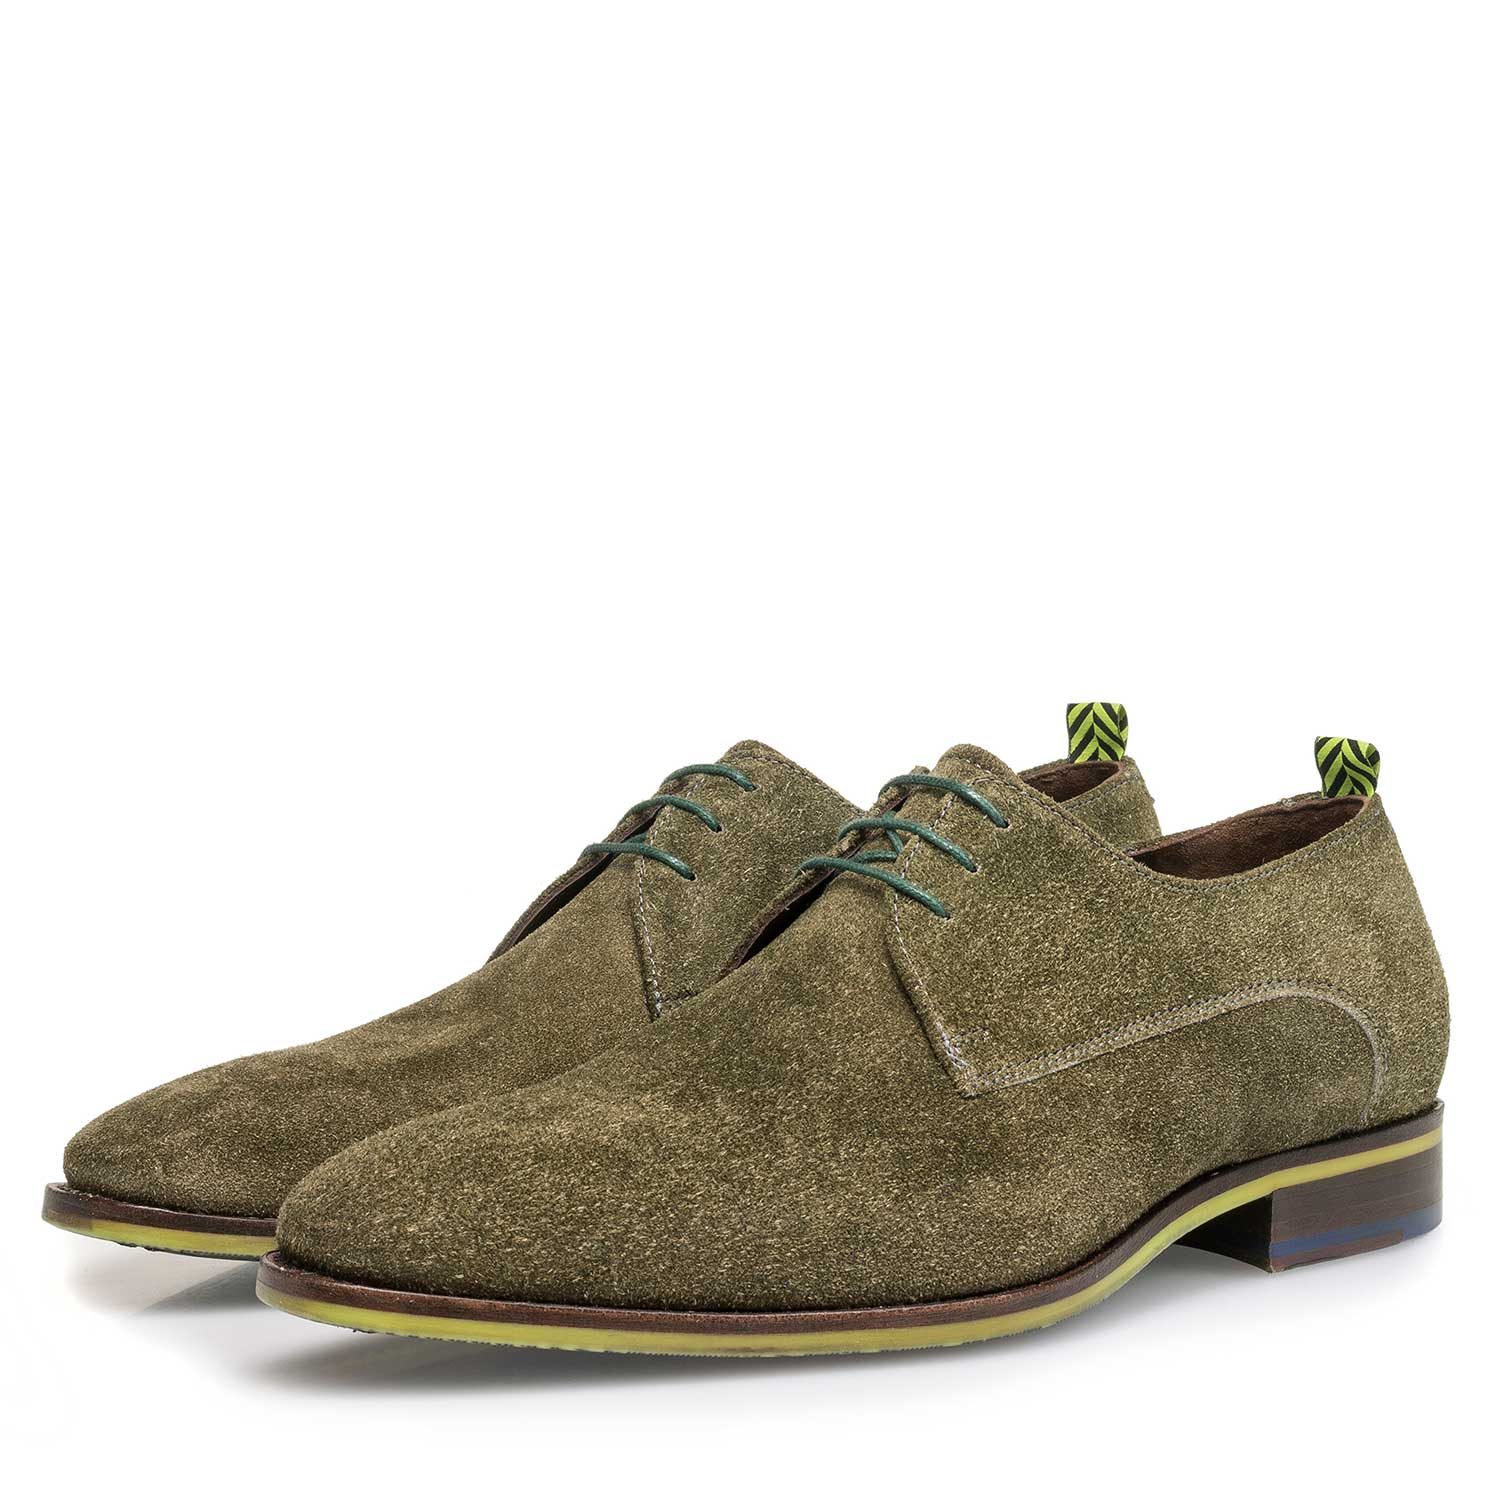 18092/02 - Green buffed suede leather lace shoe